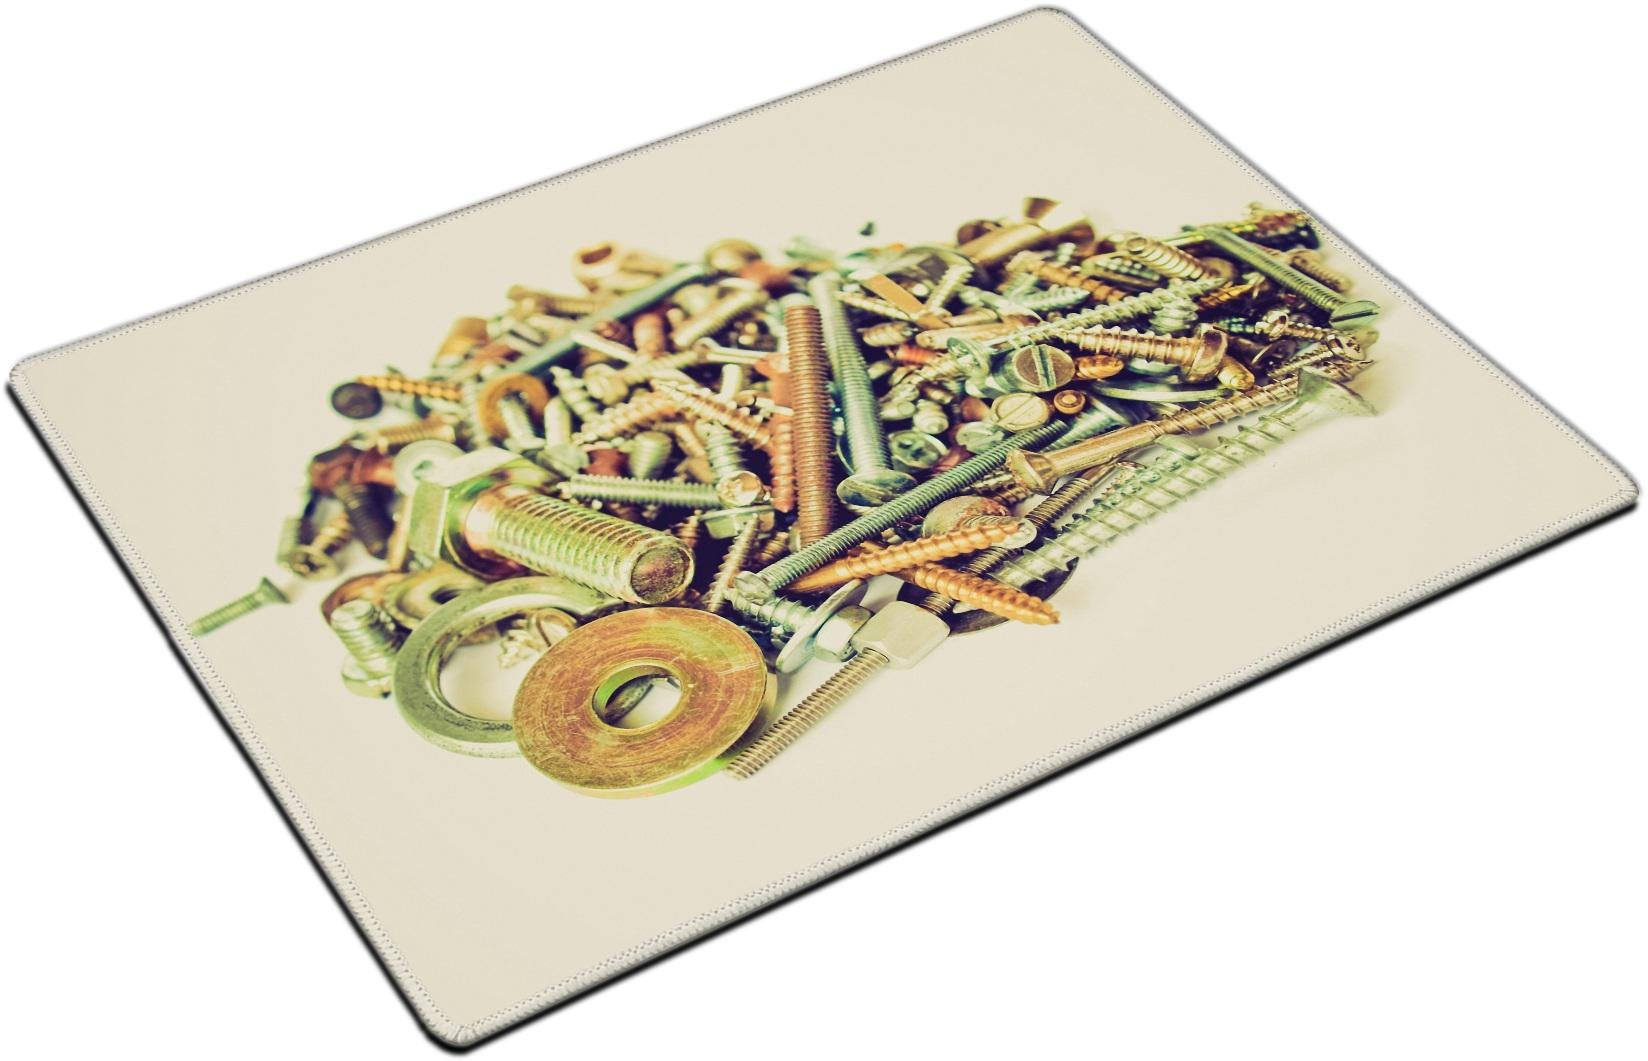 MSD Placemat Non-Slip Natural Rubber Desk Pads Place-mats Design 27182500 Vintage Looking Industrial Steel Hardware Bolts Nuts Screws